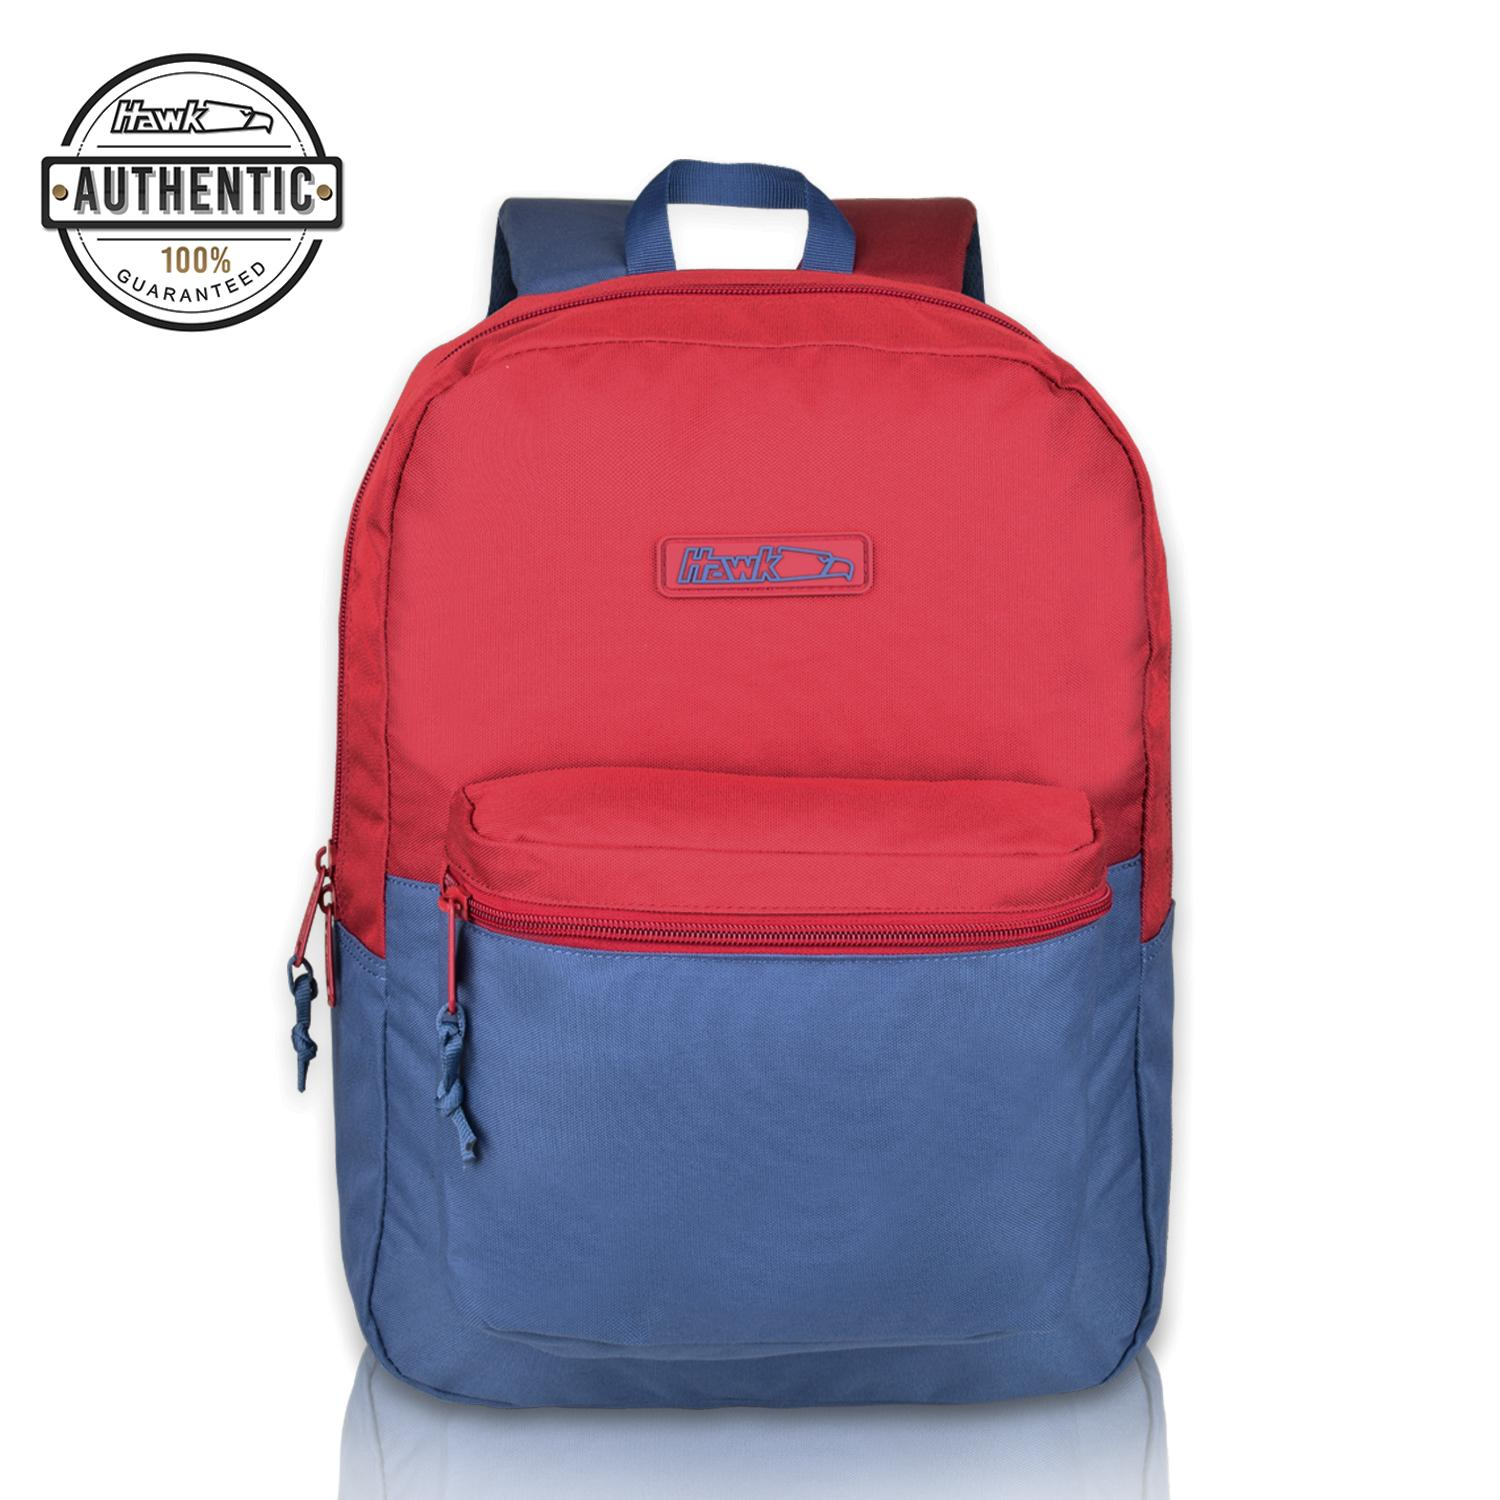 0b2a737f87f0 Hawk 4897 Backpack